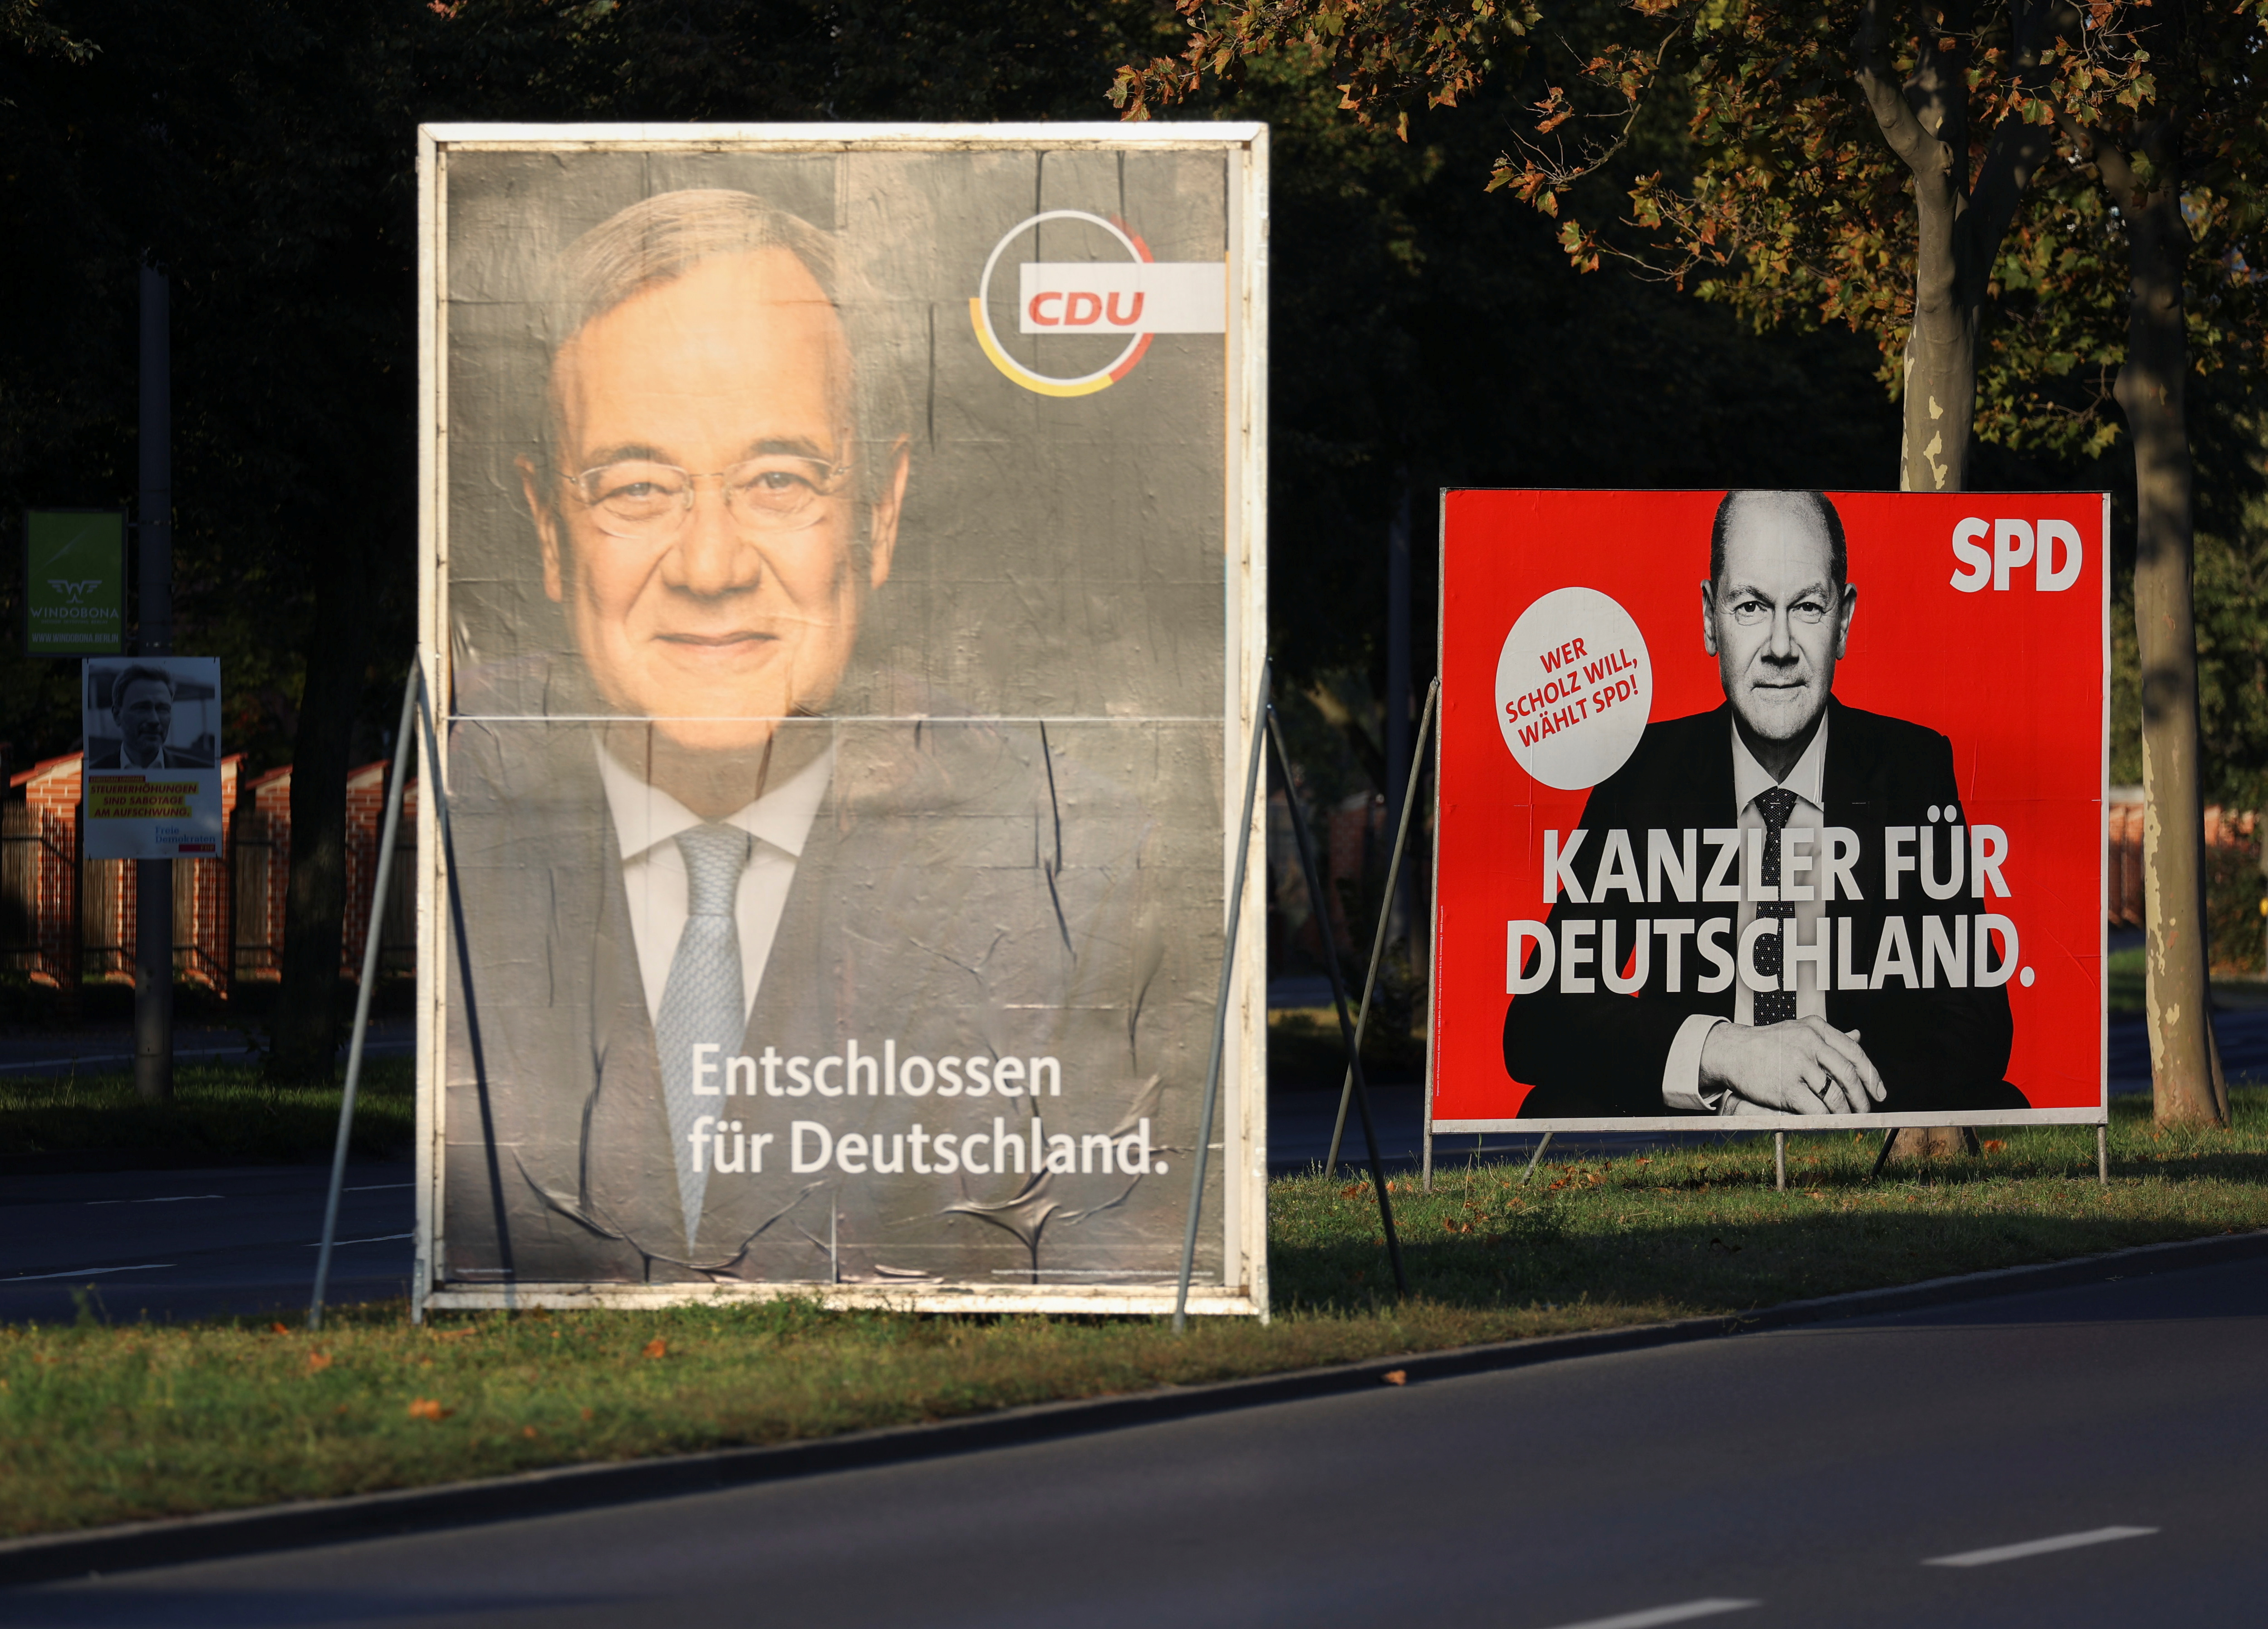 Election posters of Germany's top candidates for chancellor, North Rhine-Westphalia's State Premier and Christian Democratic Union (CDU) leader Armin Laschet and Olaf Scholz, German Minister of Finance of the Social Democratic Party (SPD) are pictured in Berlin, Germany, September 14, 2021. REUTERS/Christian Mang